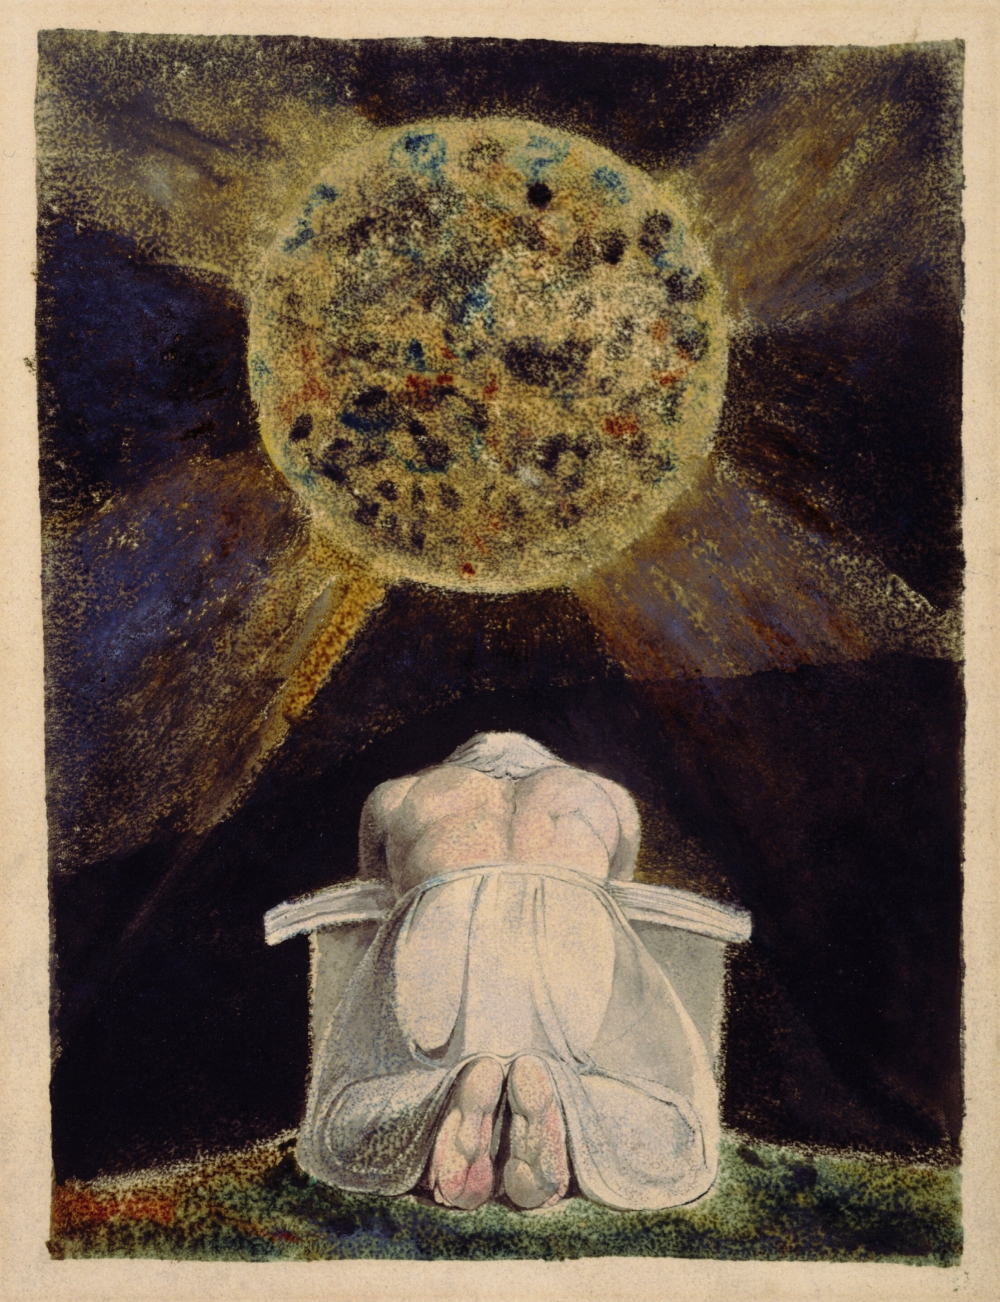 William_Blake_-_Sconfitta_-_Frontispiece_to_The_Song_of_Los.jpg